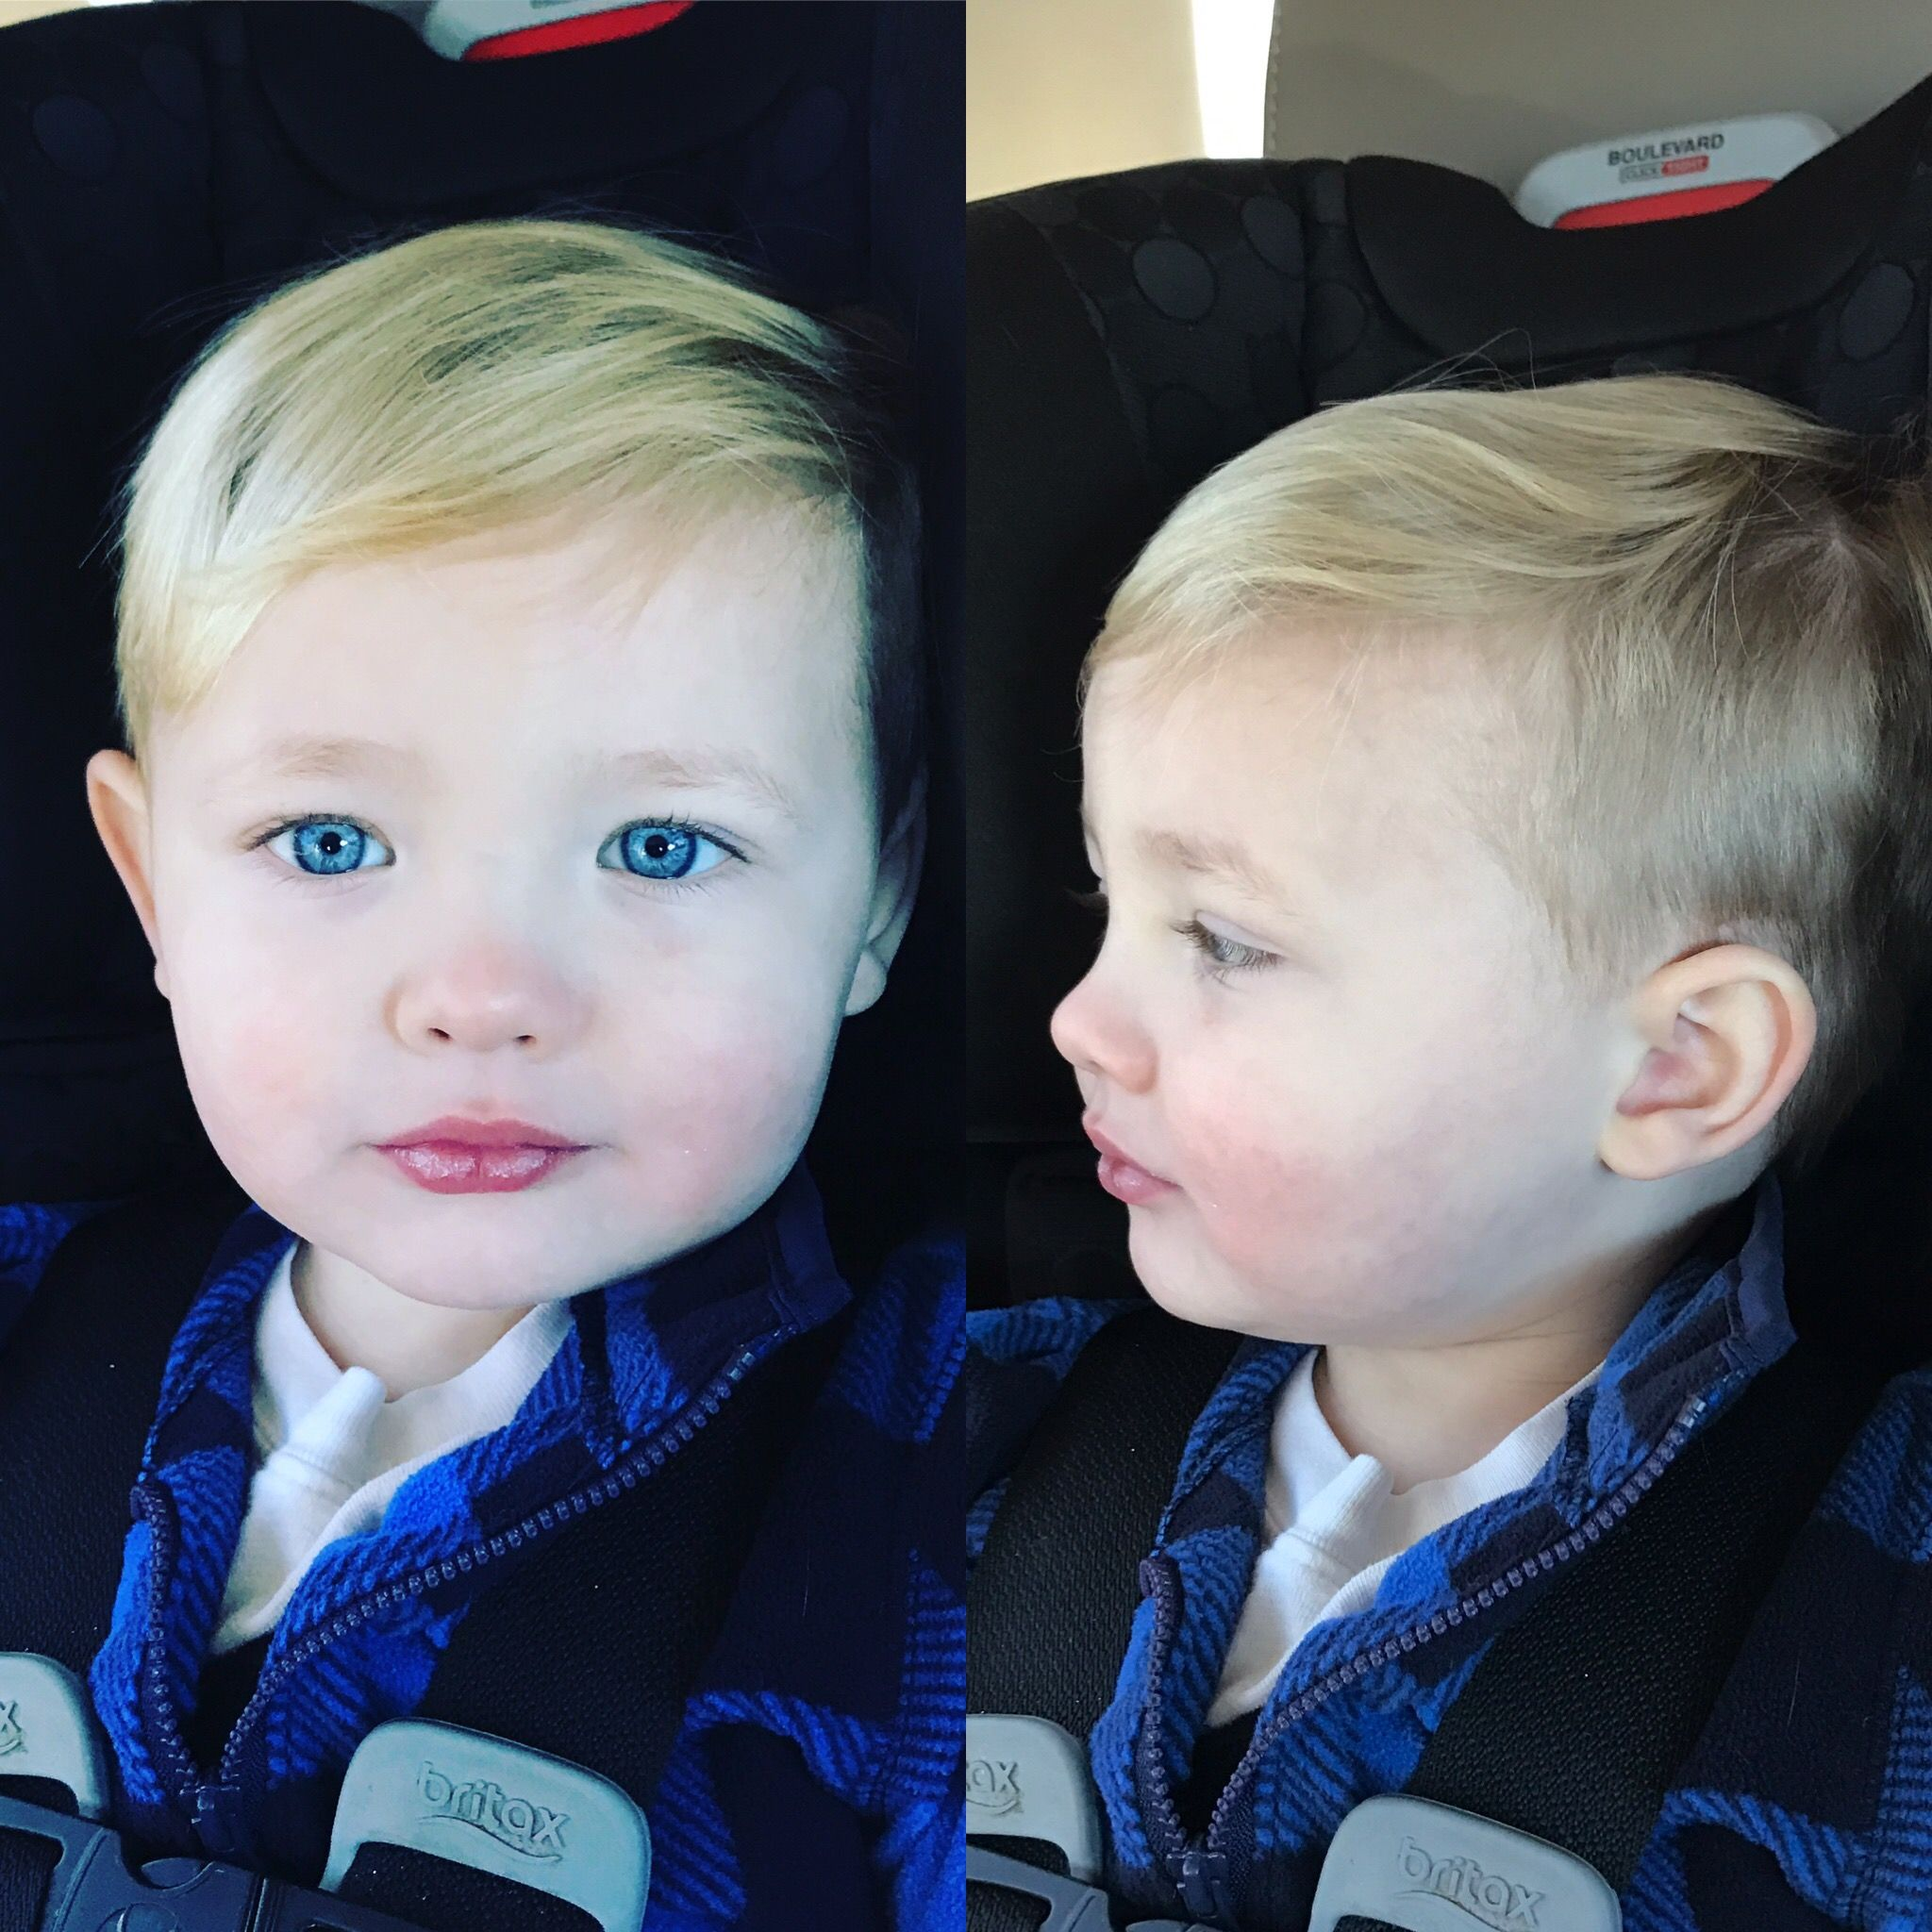 Hairstyles For 2 Years Boys In 2020 Little Boy Haircuts Boys Haircuts Boys Haircut Styles